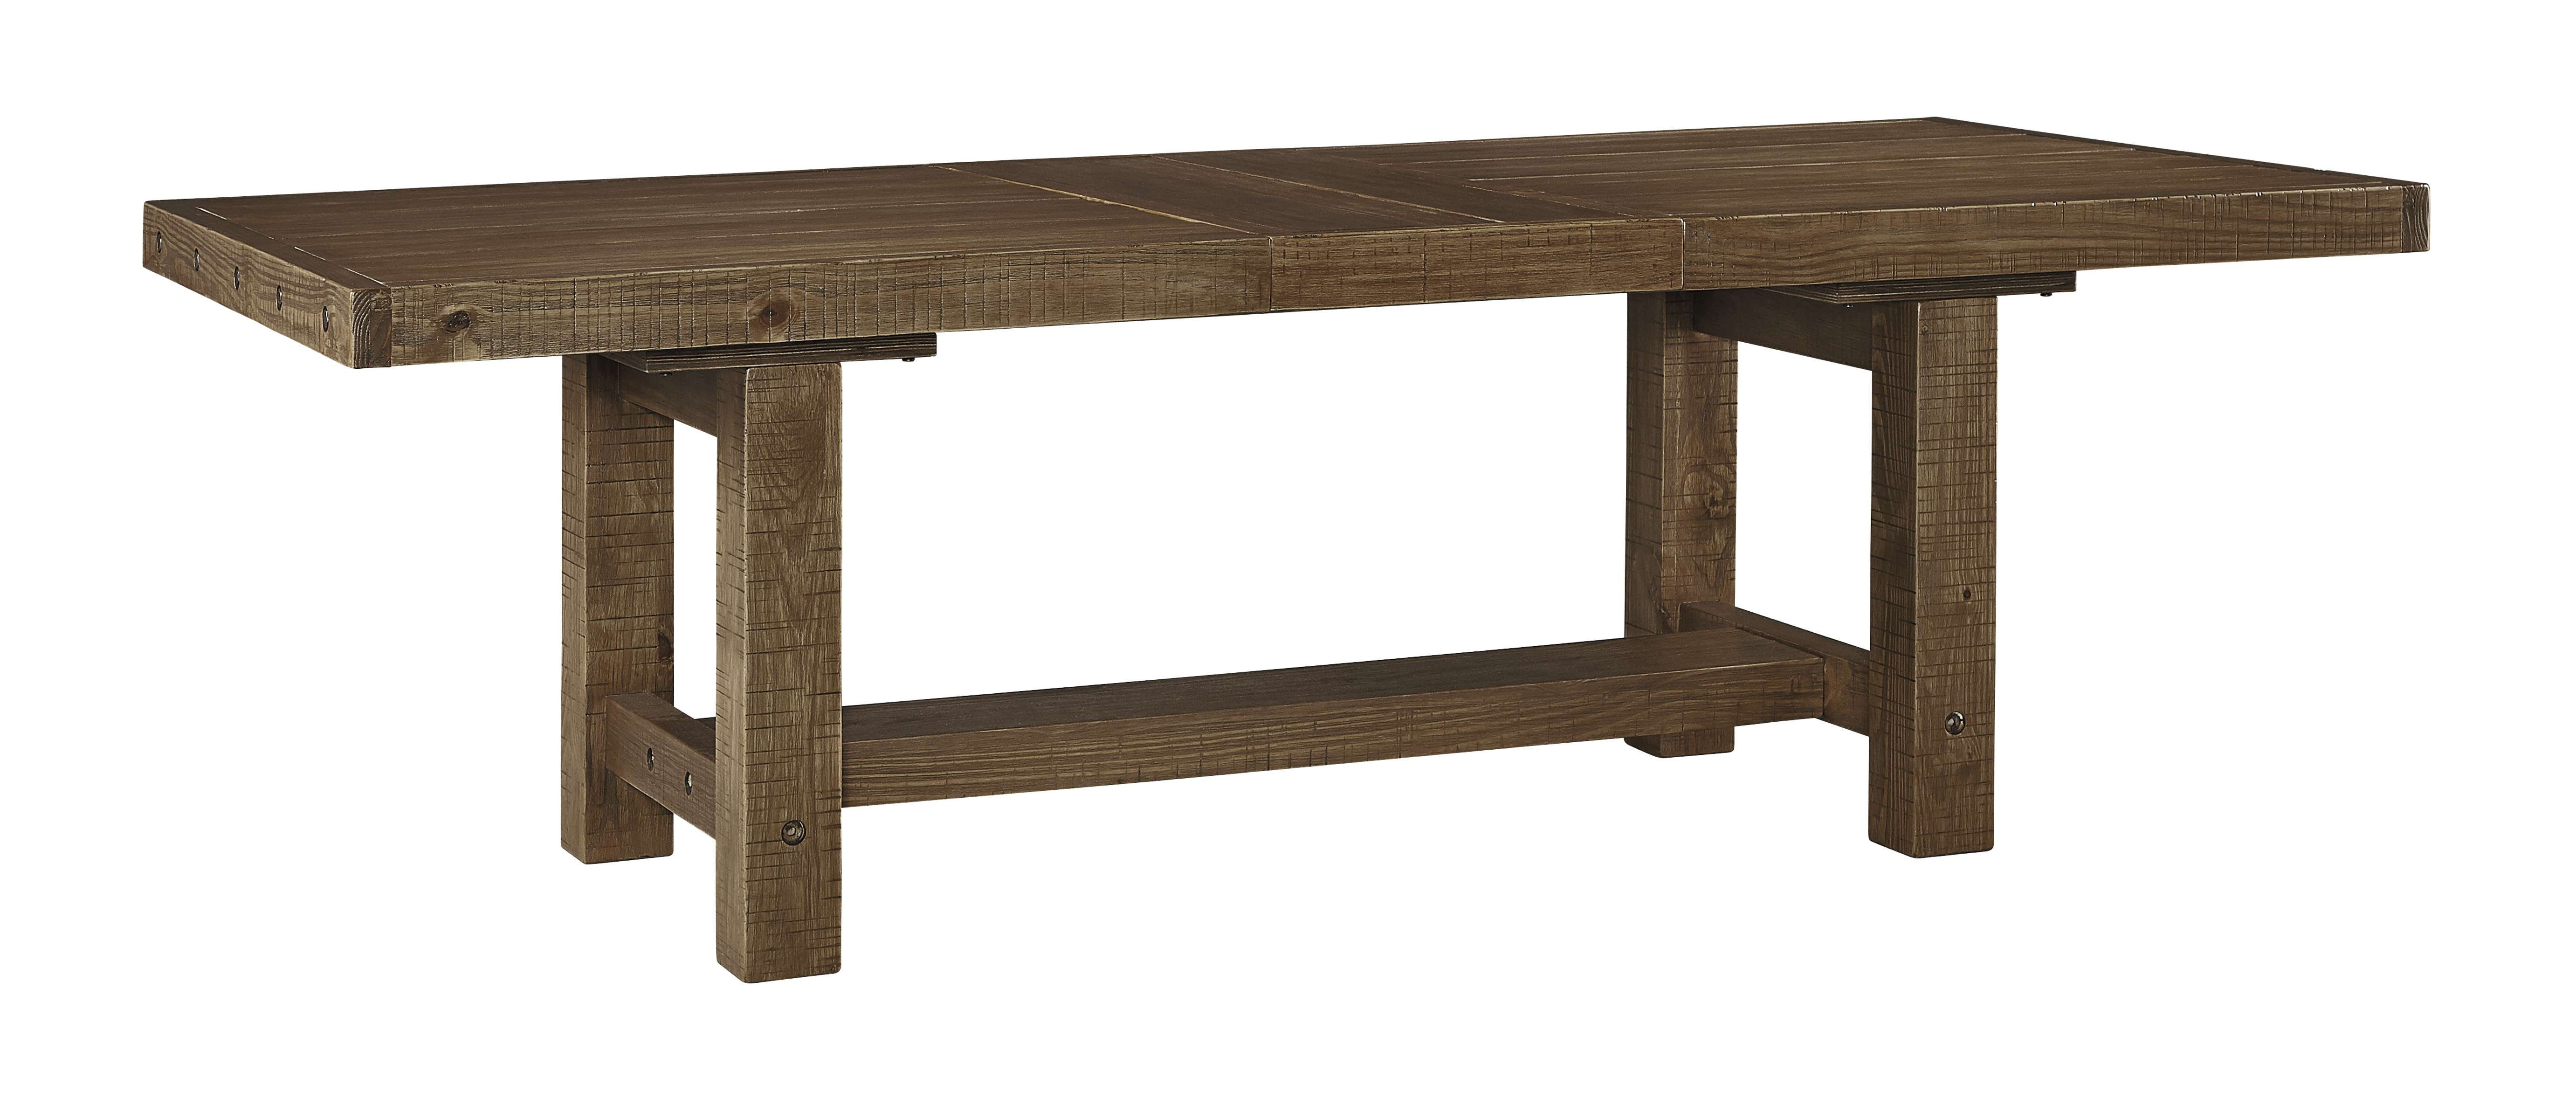 Tamilo Gray/Brown Rectangle Dining Room Extension Table